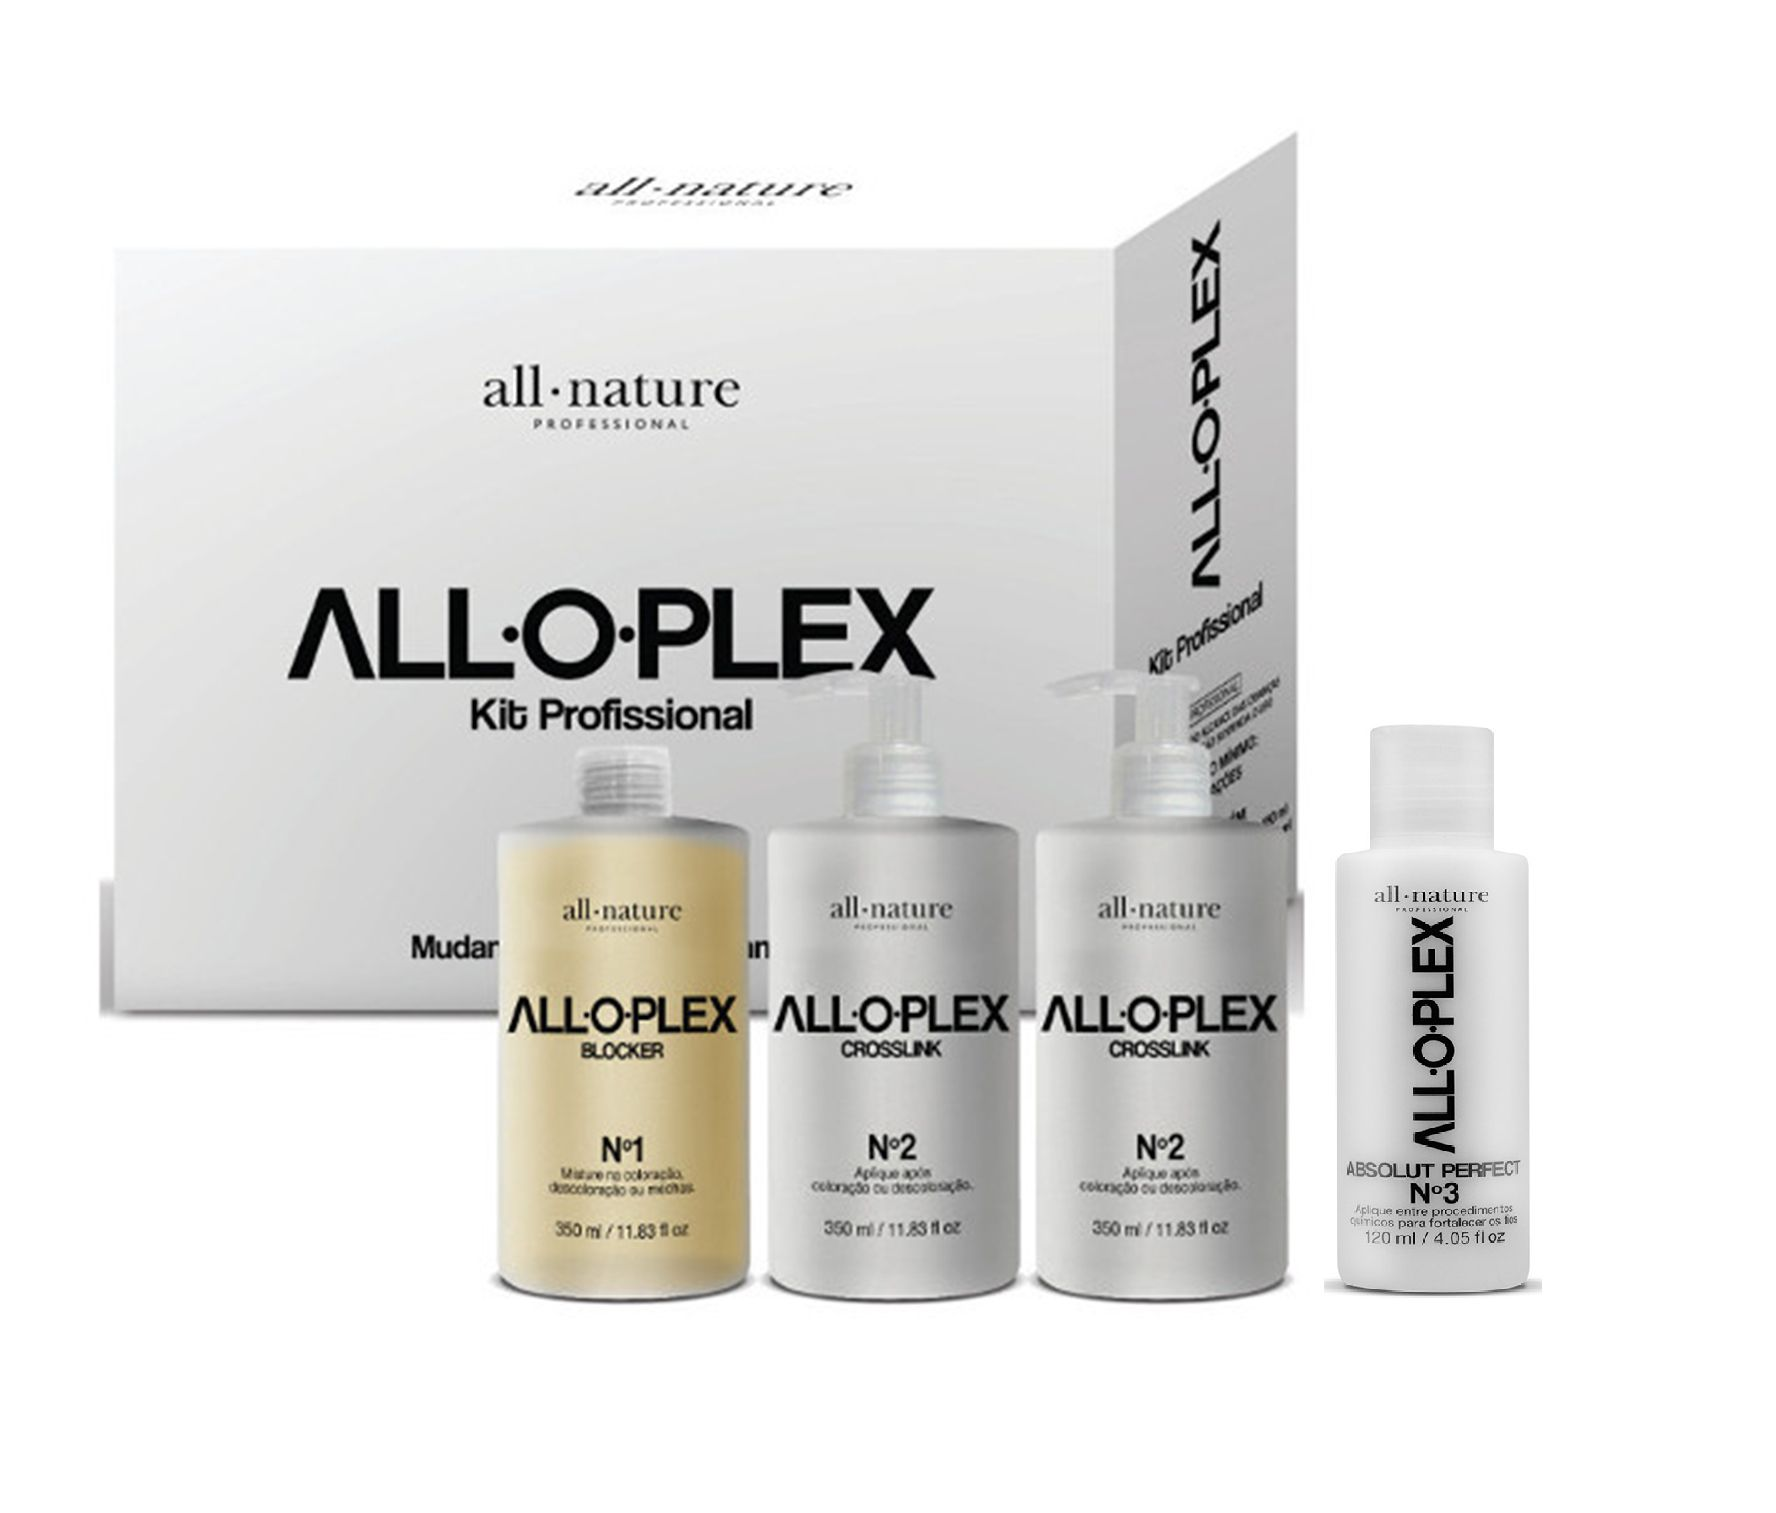 Alloplex Blocker  Bloqueador de Danos Nas Descolorações Mechas e Colorações e Absolut Perfect nº 3 All Nature